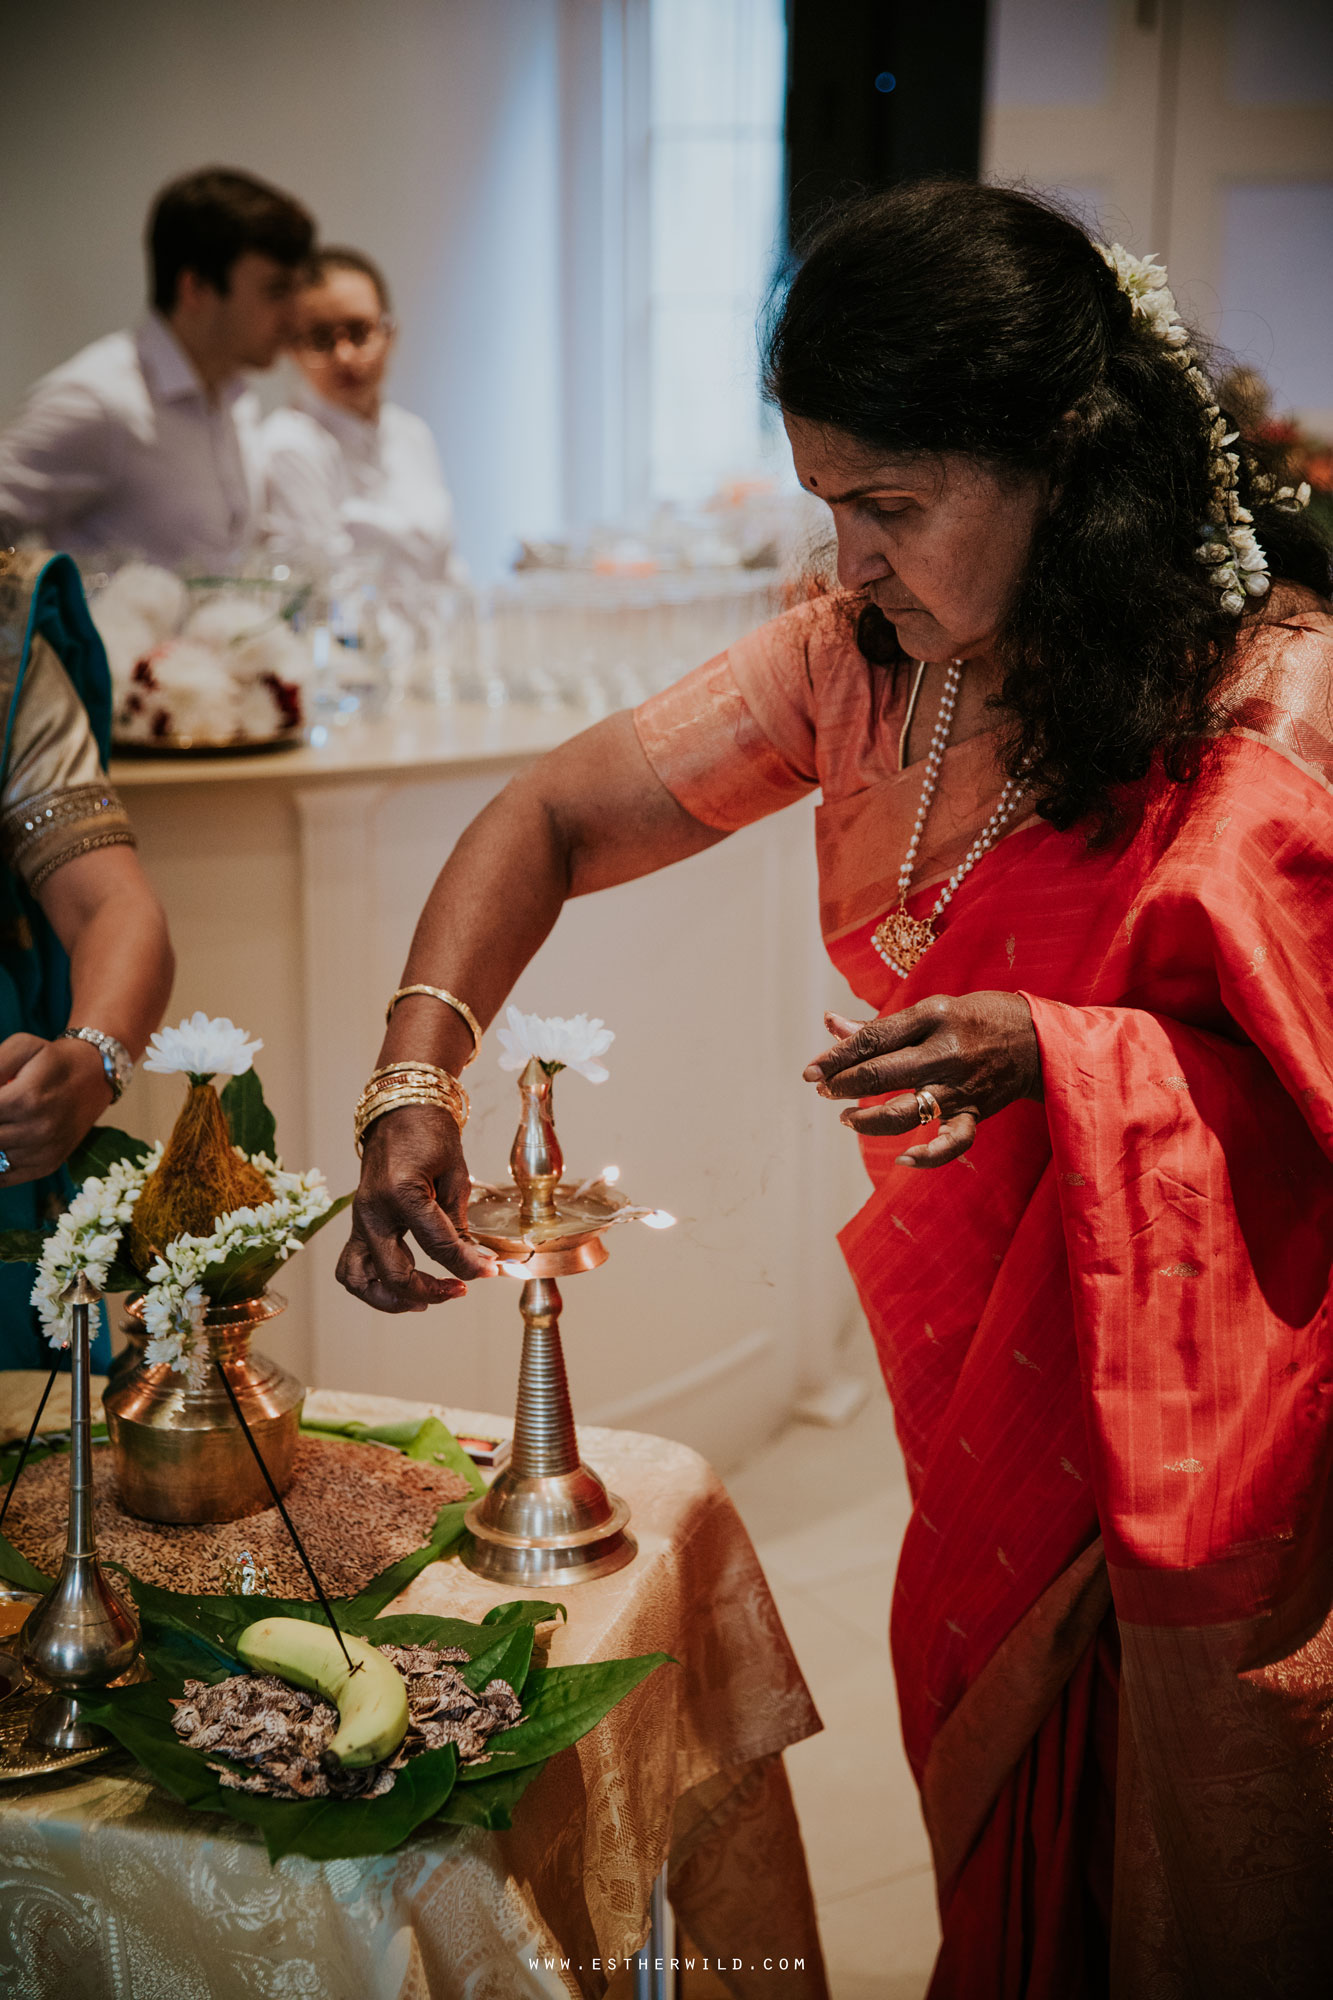 Northbrook_Park_Farnham_Surrey_London_Wedding_Hindu_Fusion_Esther_Wild_Photographer_IMG_3243.jpg